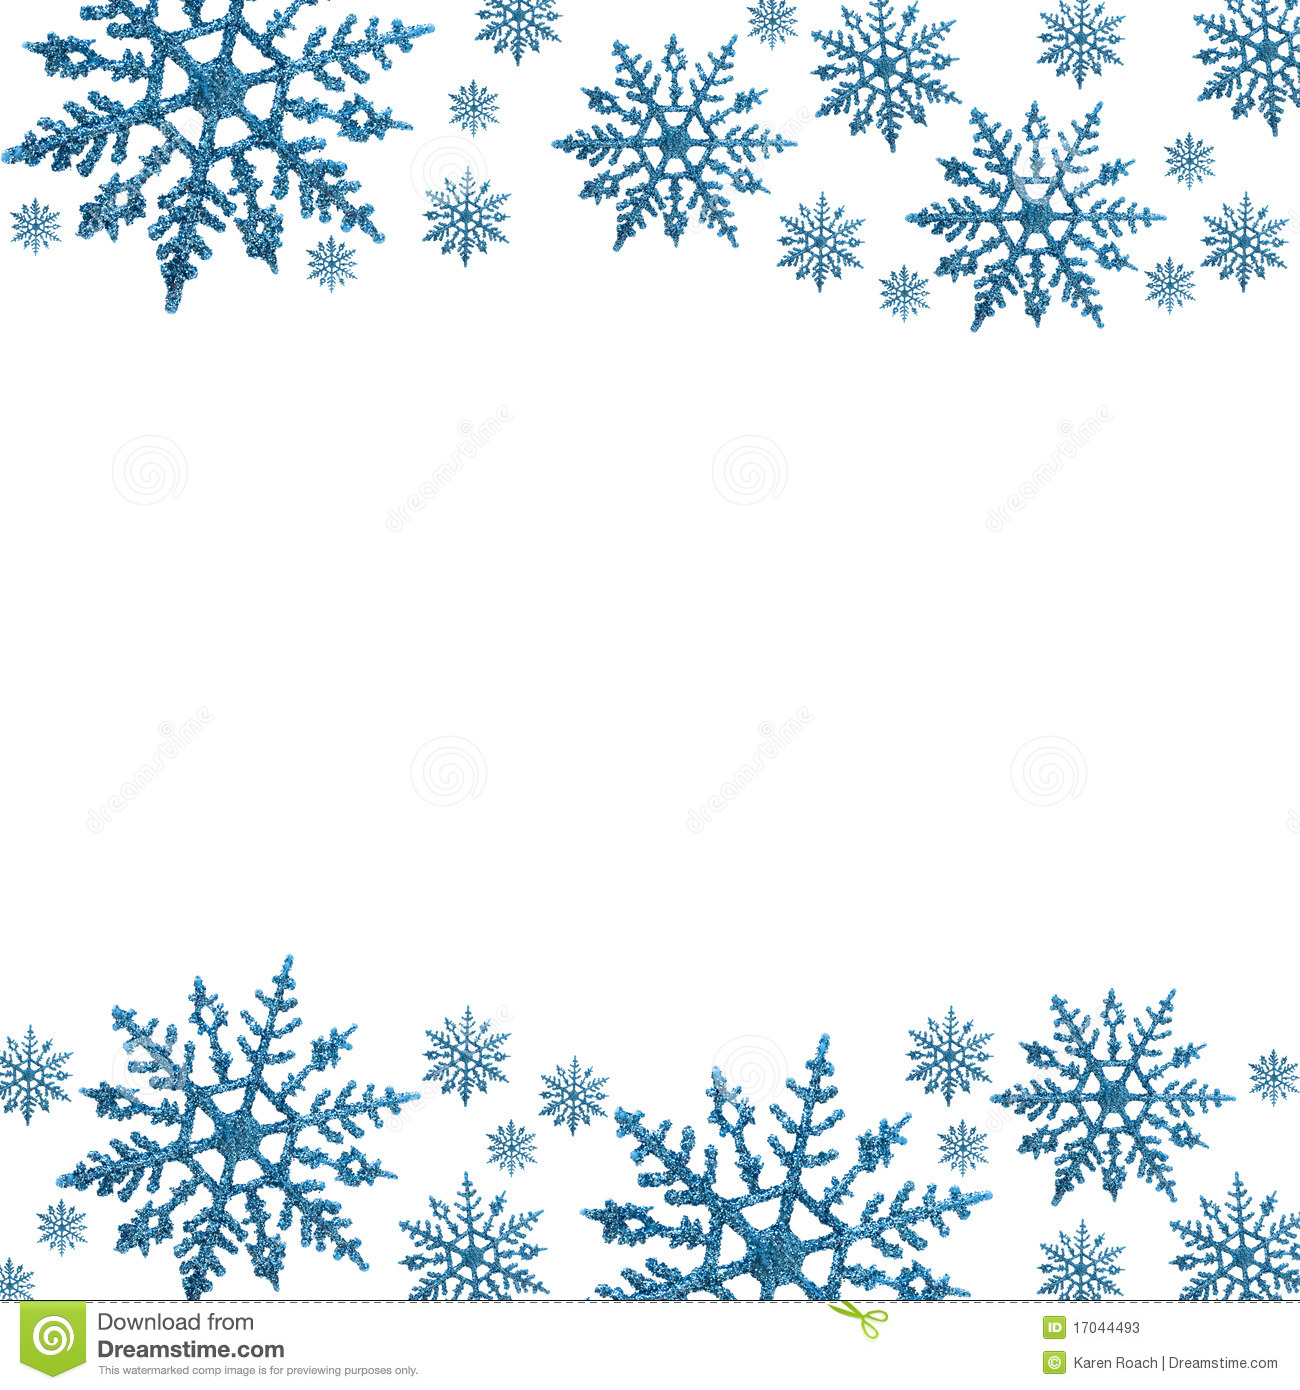 Snowman border clipart free graphic library stock 40+ Snowflake Clipart Border | ClipartLook graphic library stock